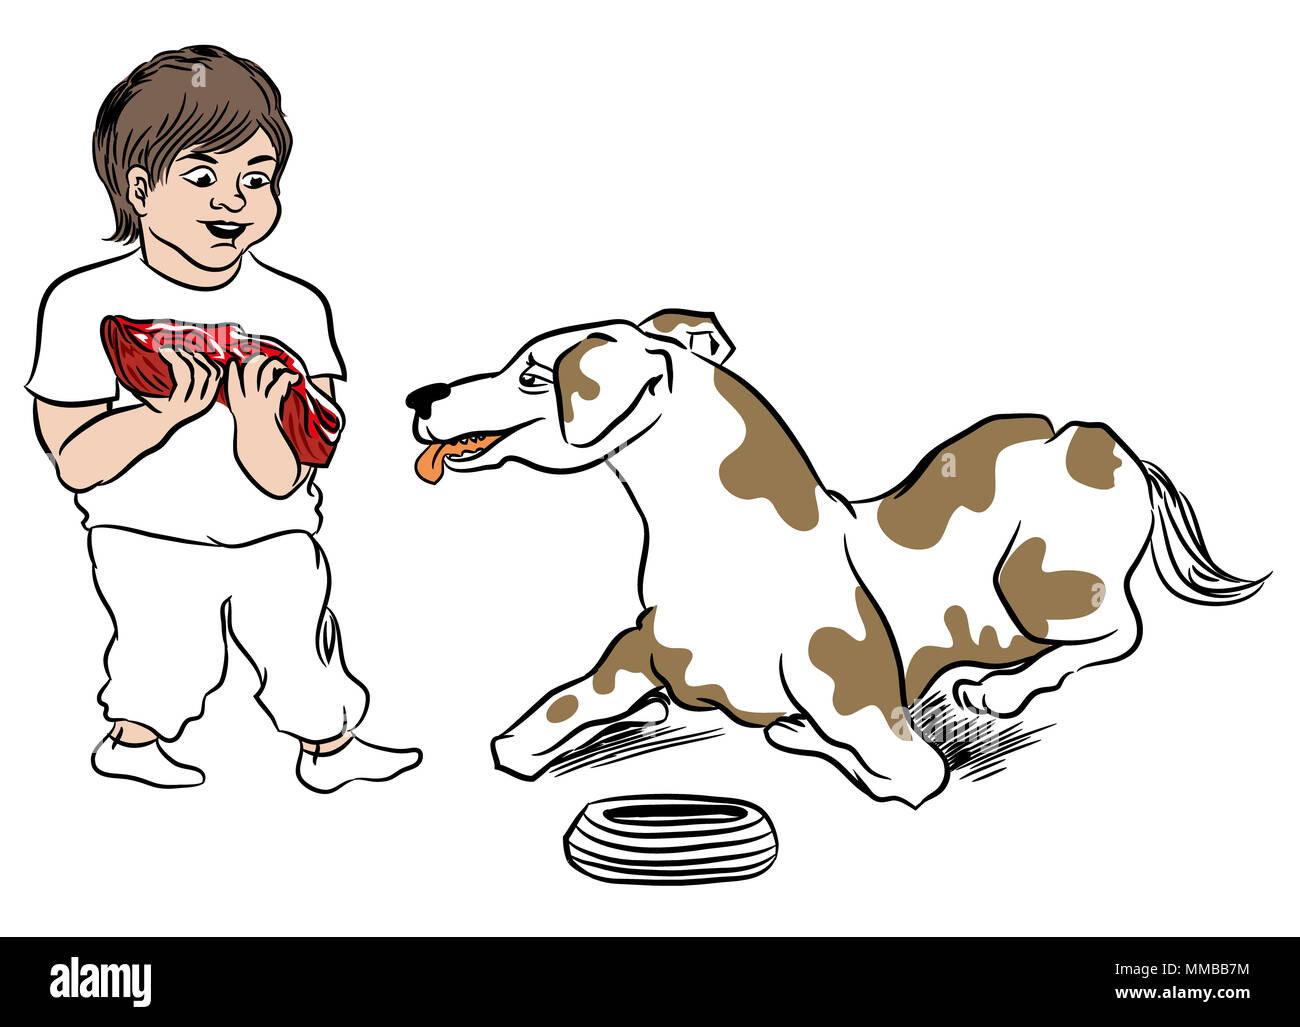 Child giving meal to dog.  Dog waiting for big piece of steak. Boy love his pet. illustration of pet and child. - Stock Image